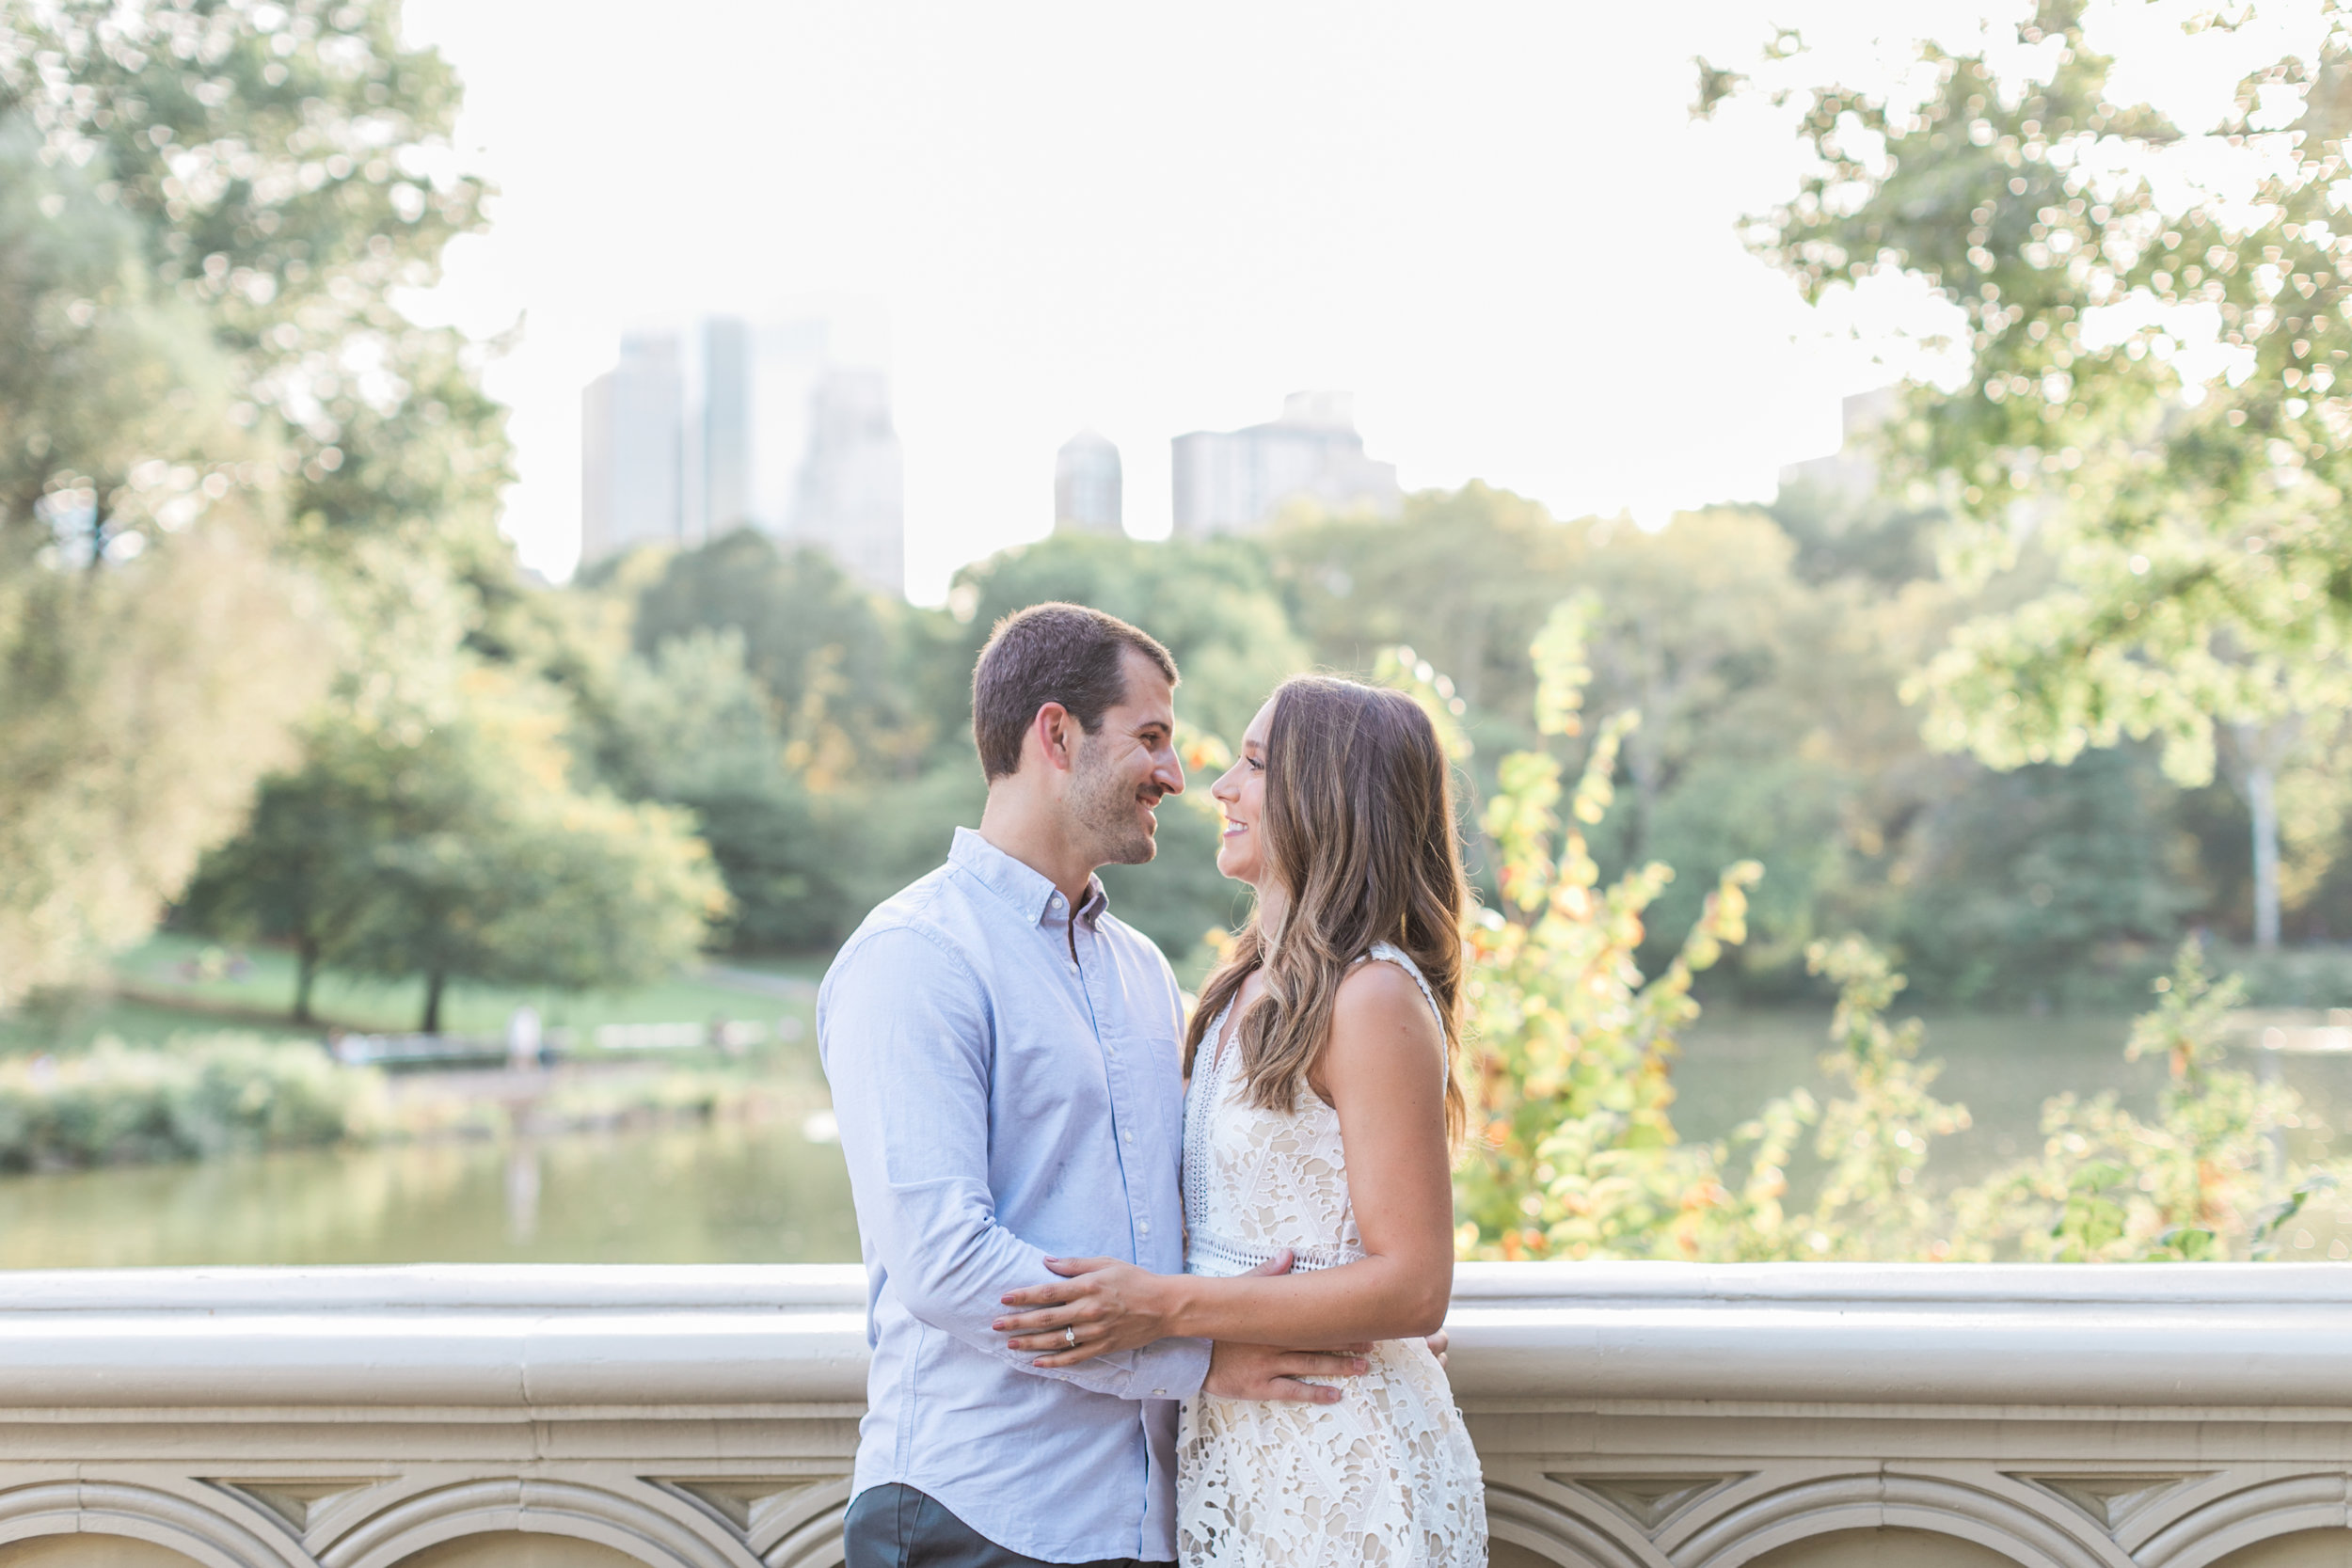 central-park-engagement-photographer4.jpg